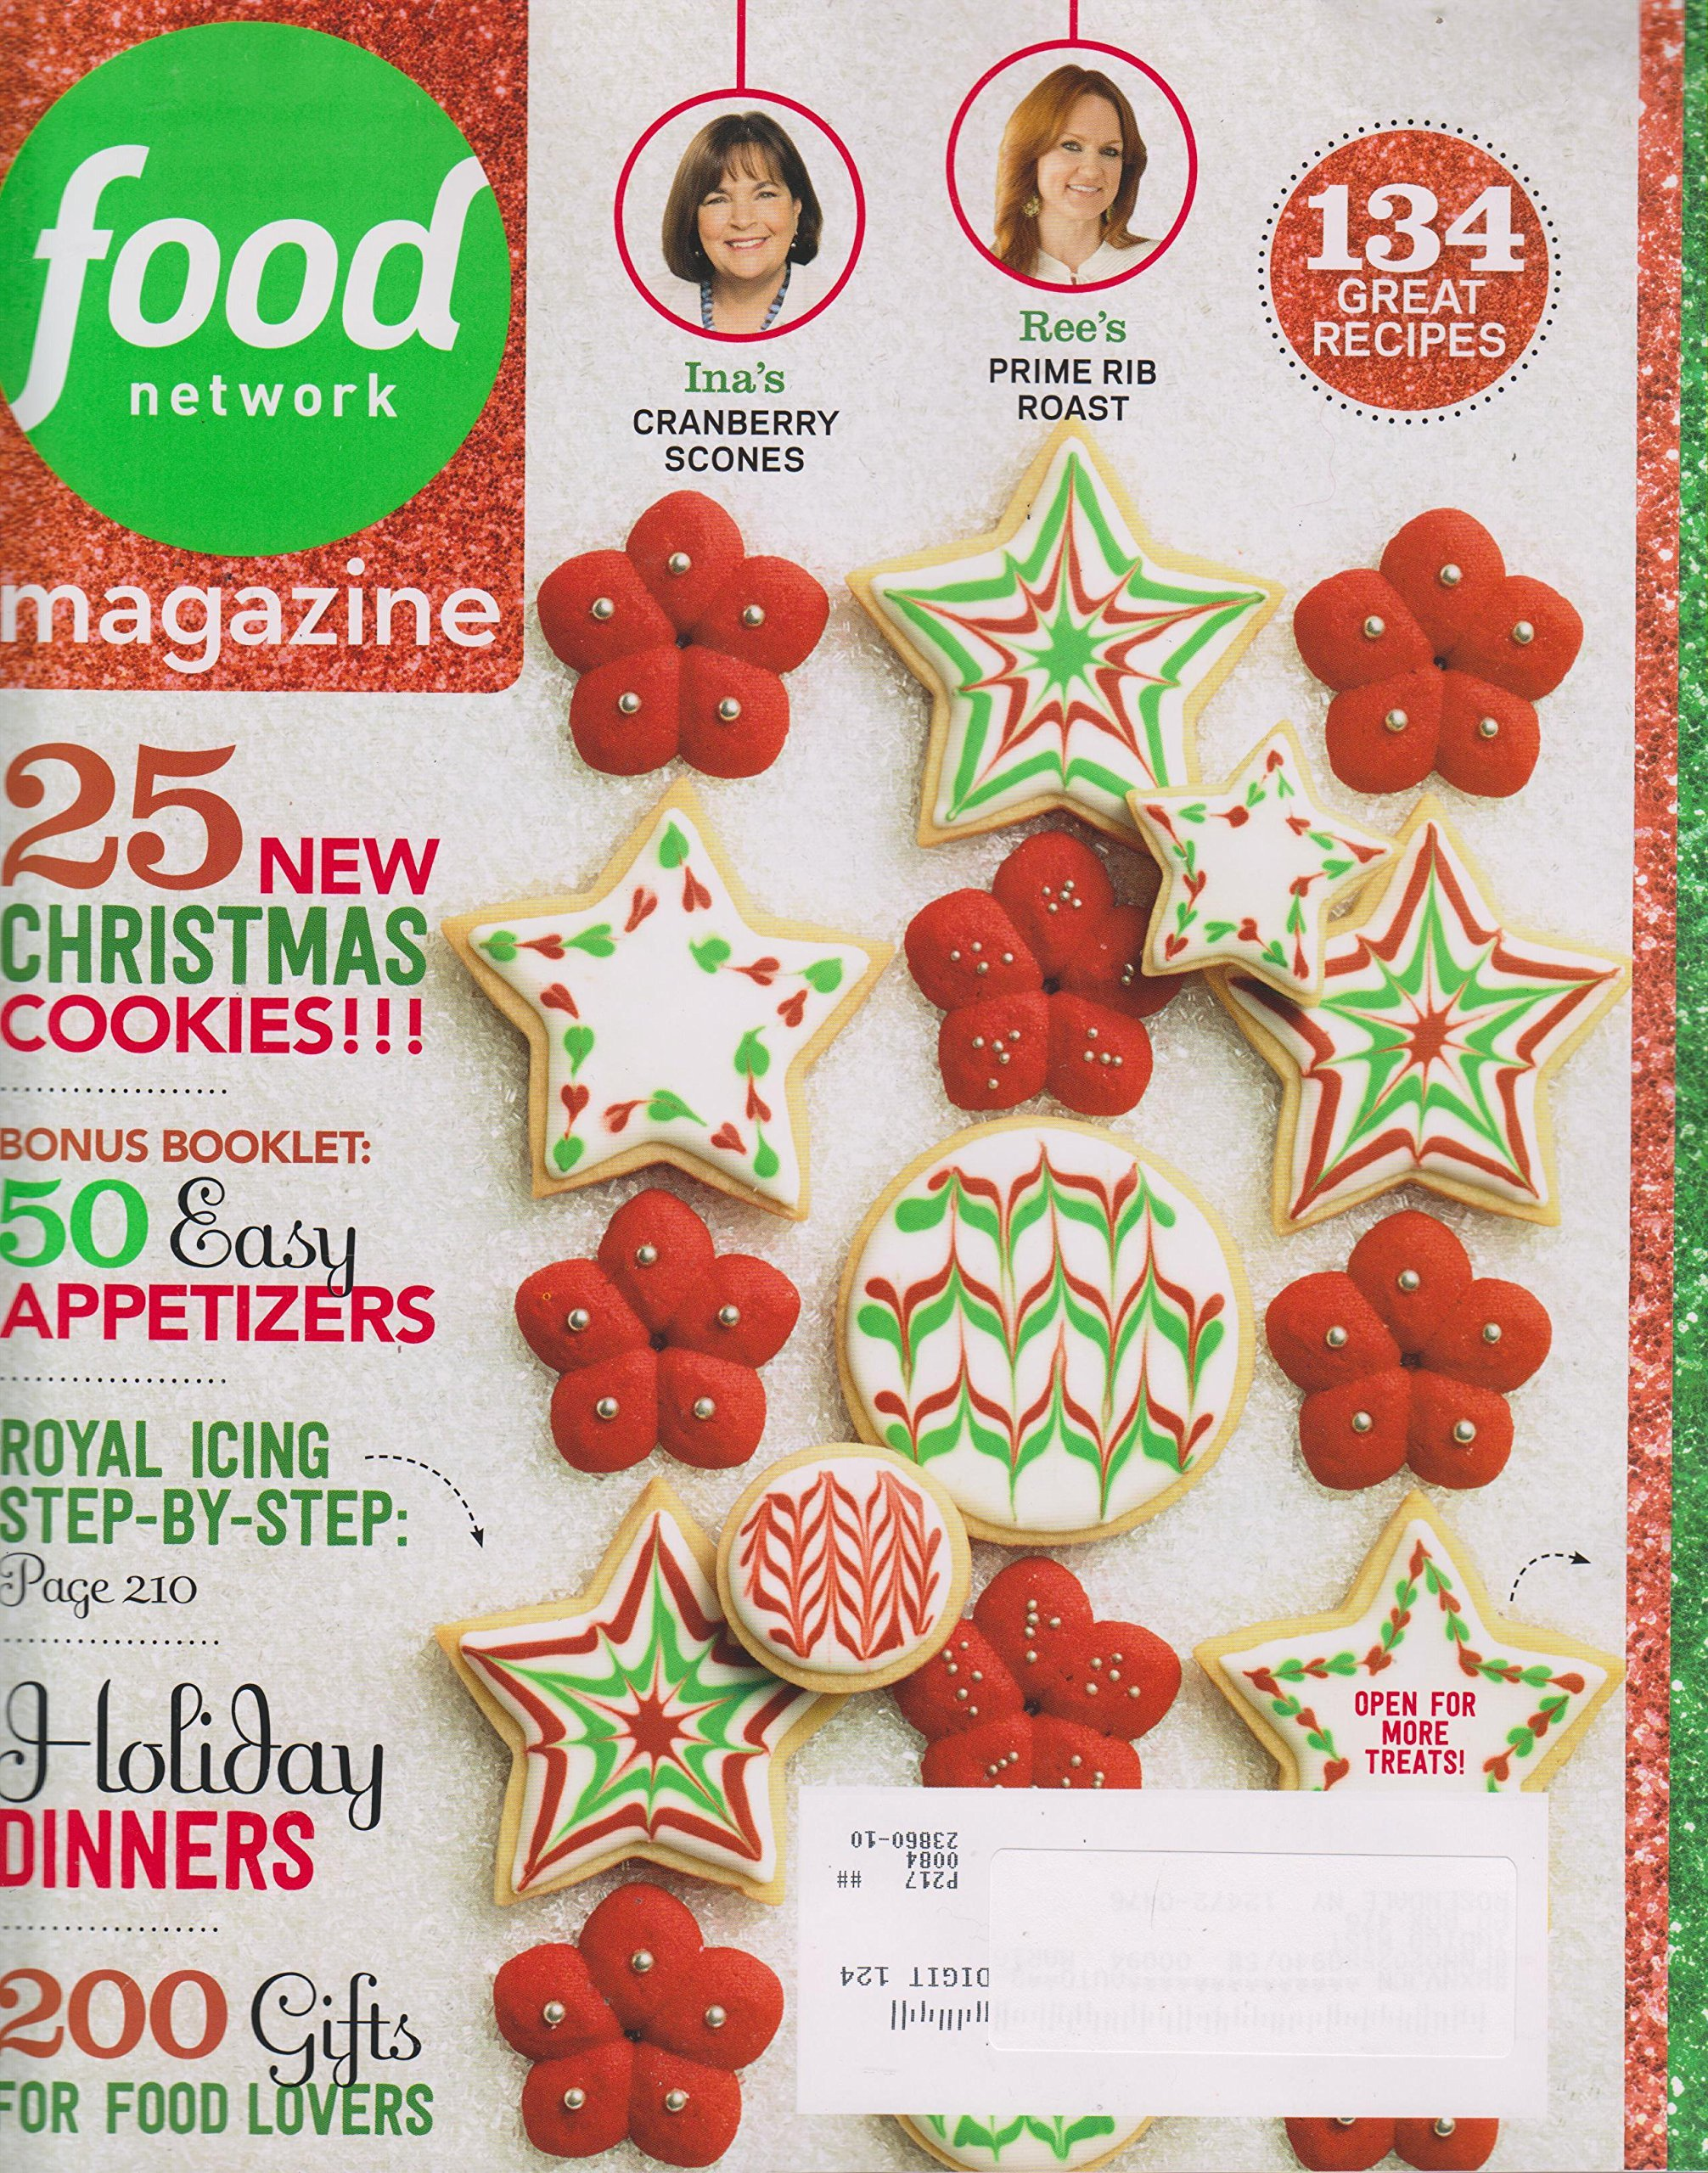 Food network magazine december 2014 25 christmas cookies food food network magazine december 2014 25 christmas cookies food network magazine amazon books forumfinder Image collections